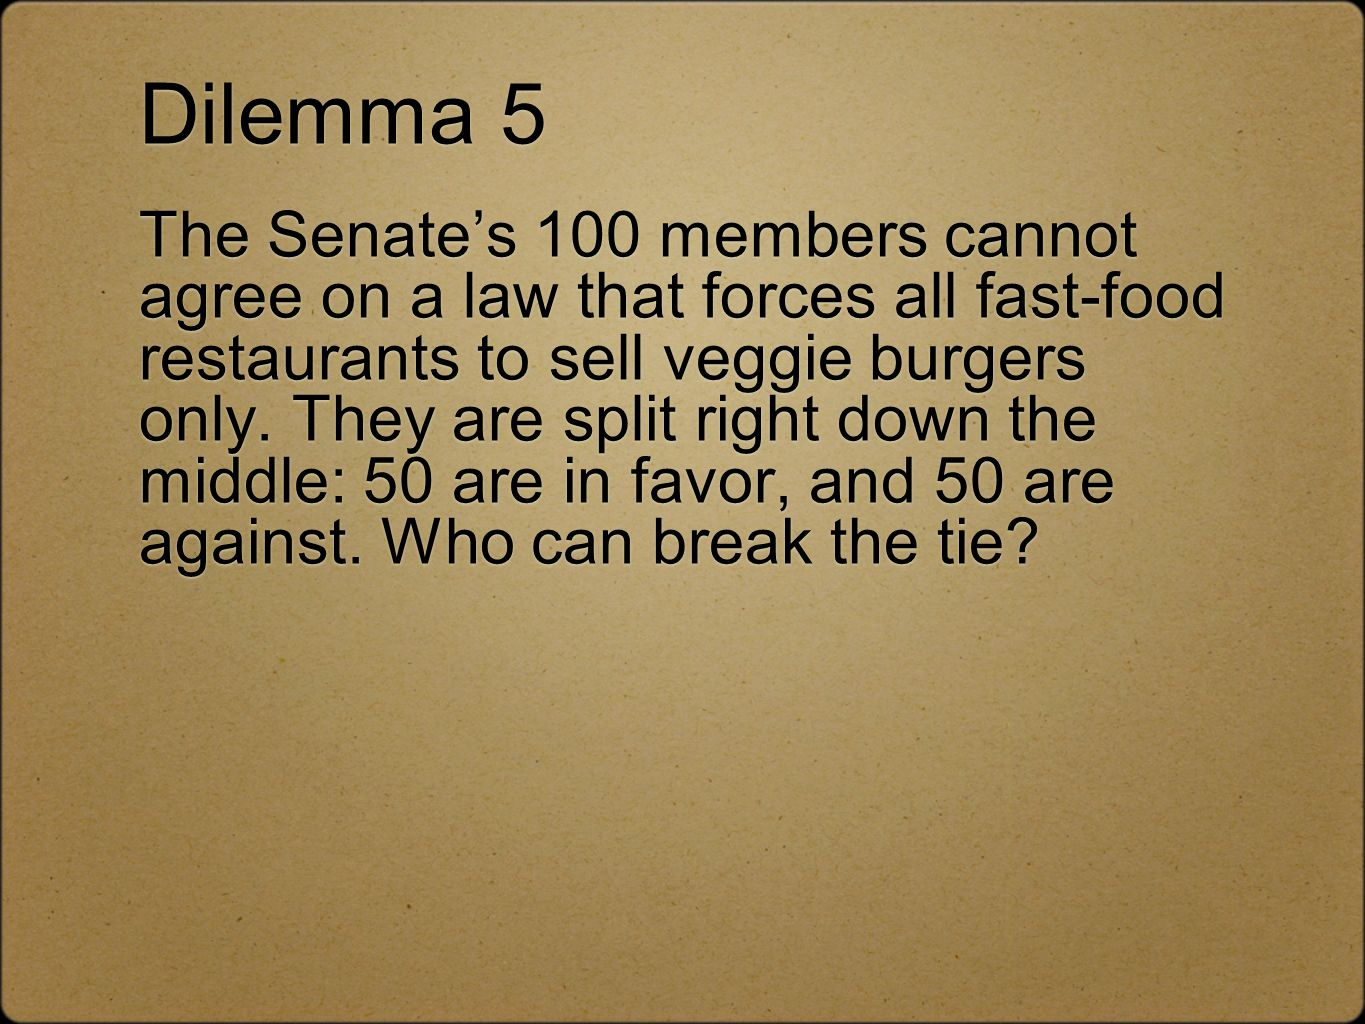 Dilemma 5 The Senate's 100 members cannot agree on a law that forces all fast-food restaurants to sell veggie burgers only.